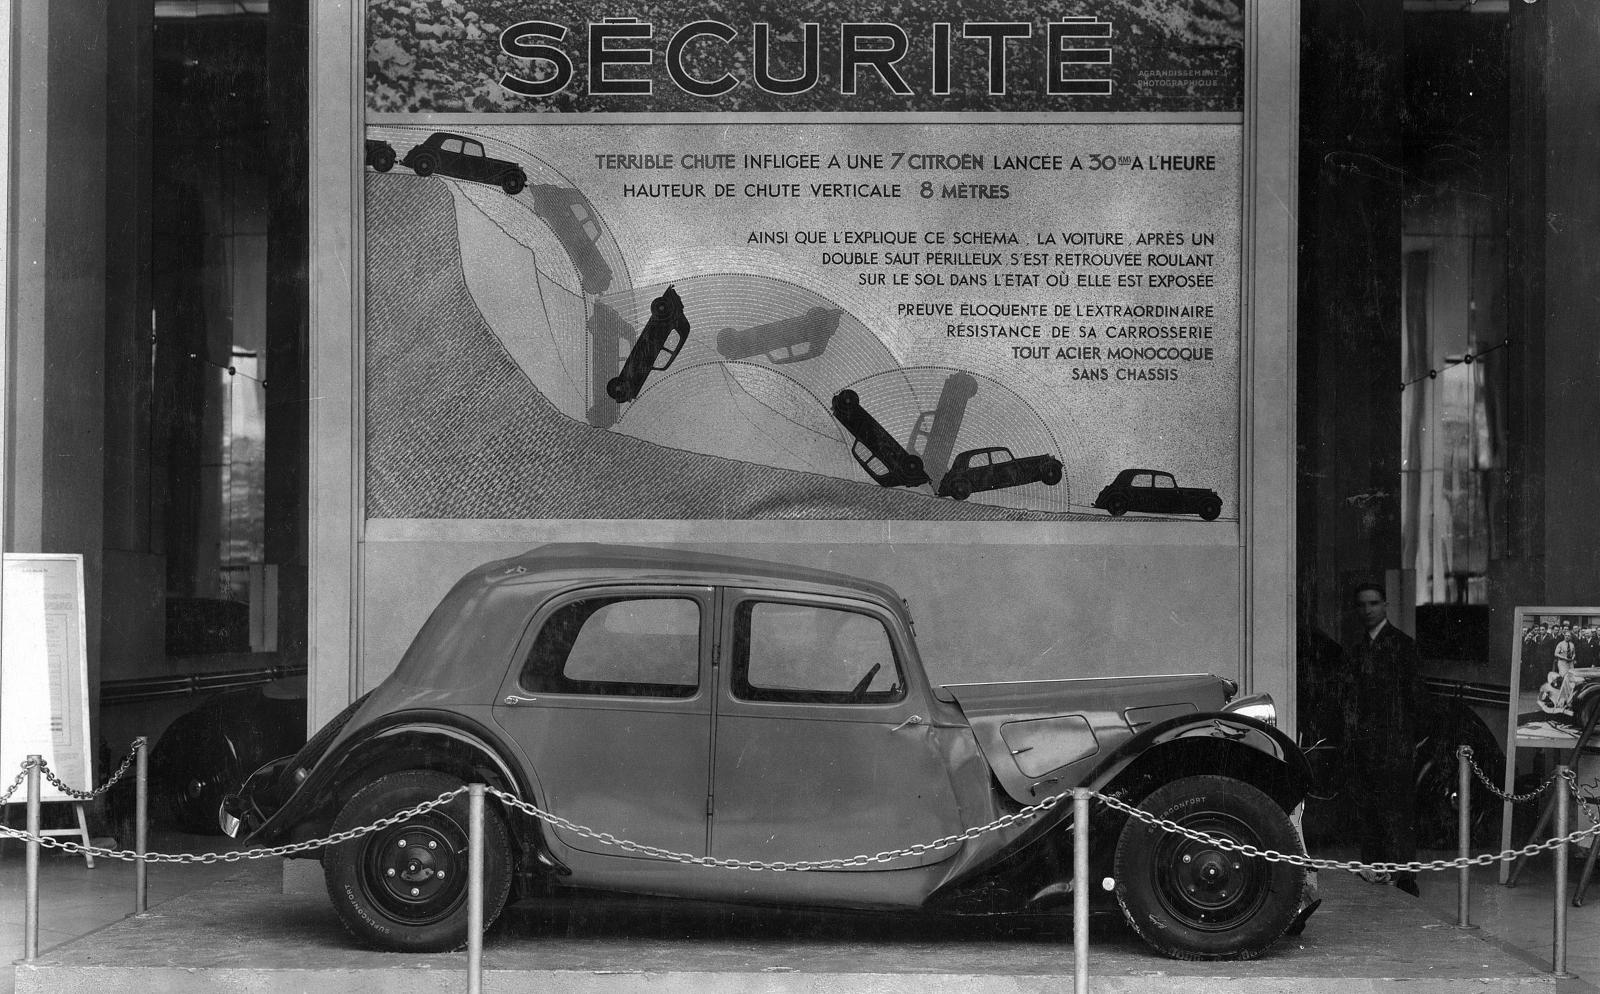 Traction drive security advertisement